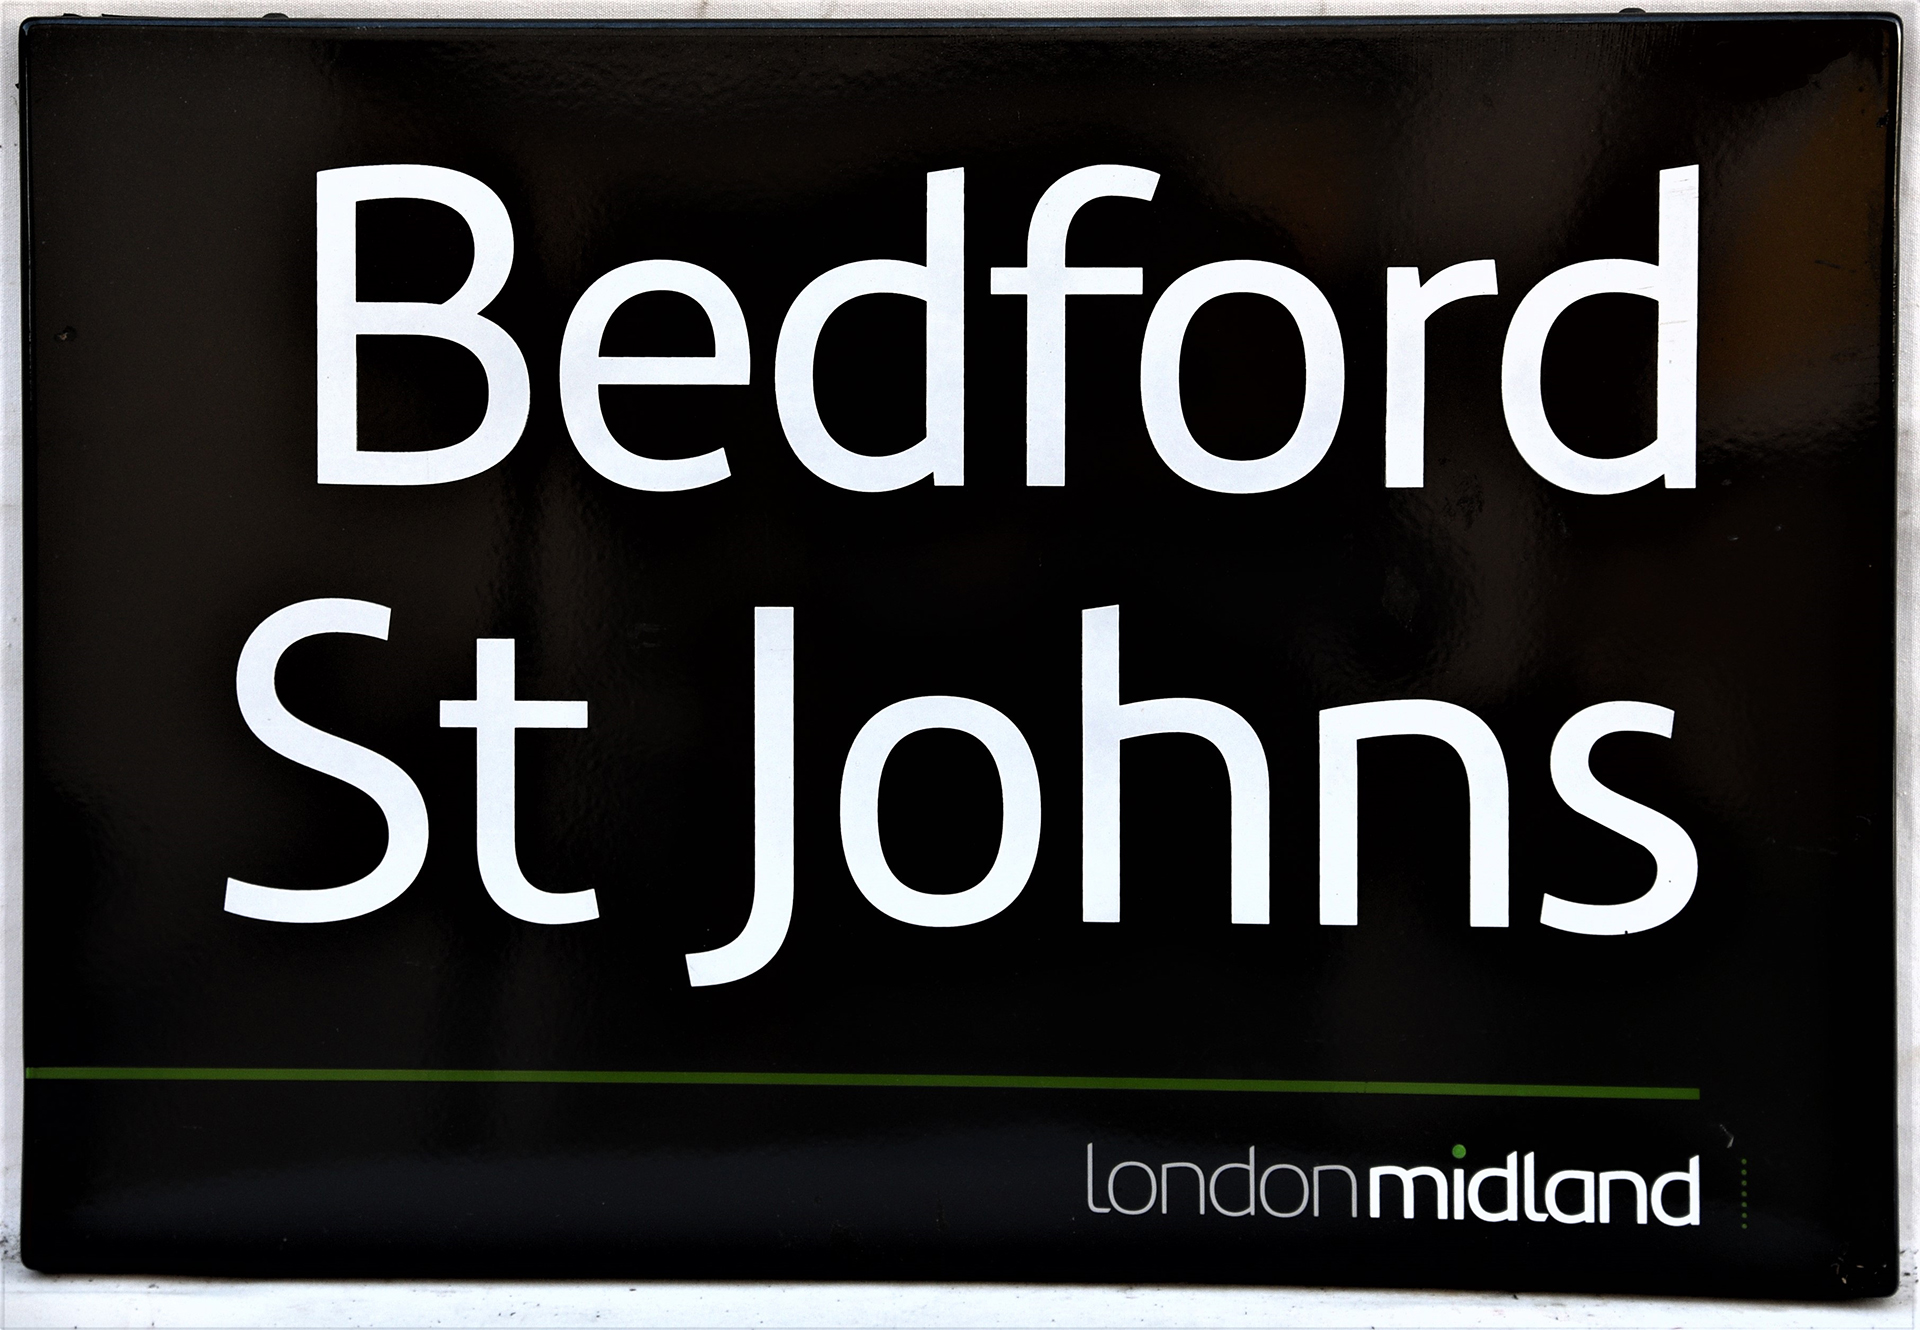 London Midland fully flanged black & white station sign. BEDFORD ST JOHNS. In excellent condition